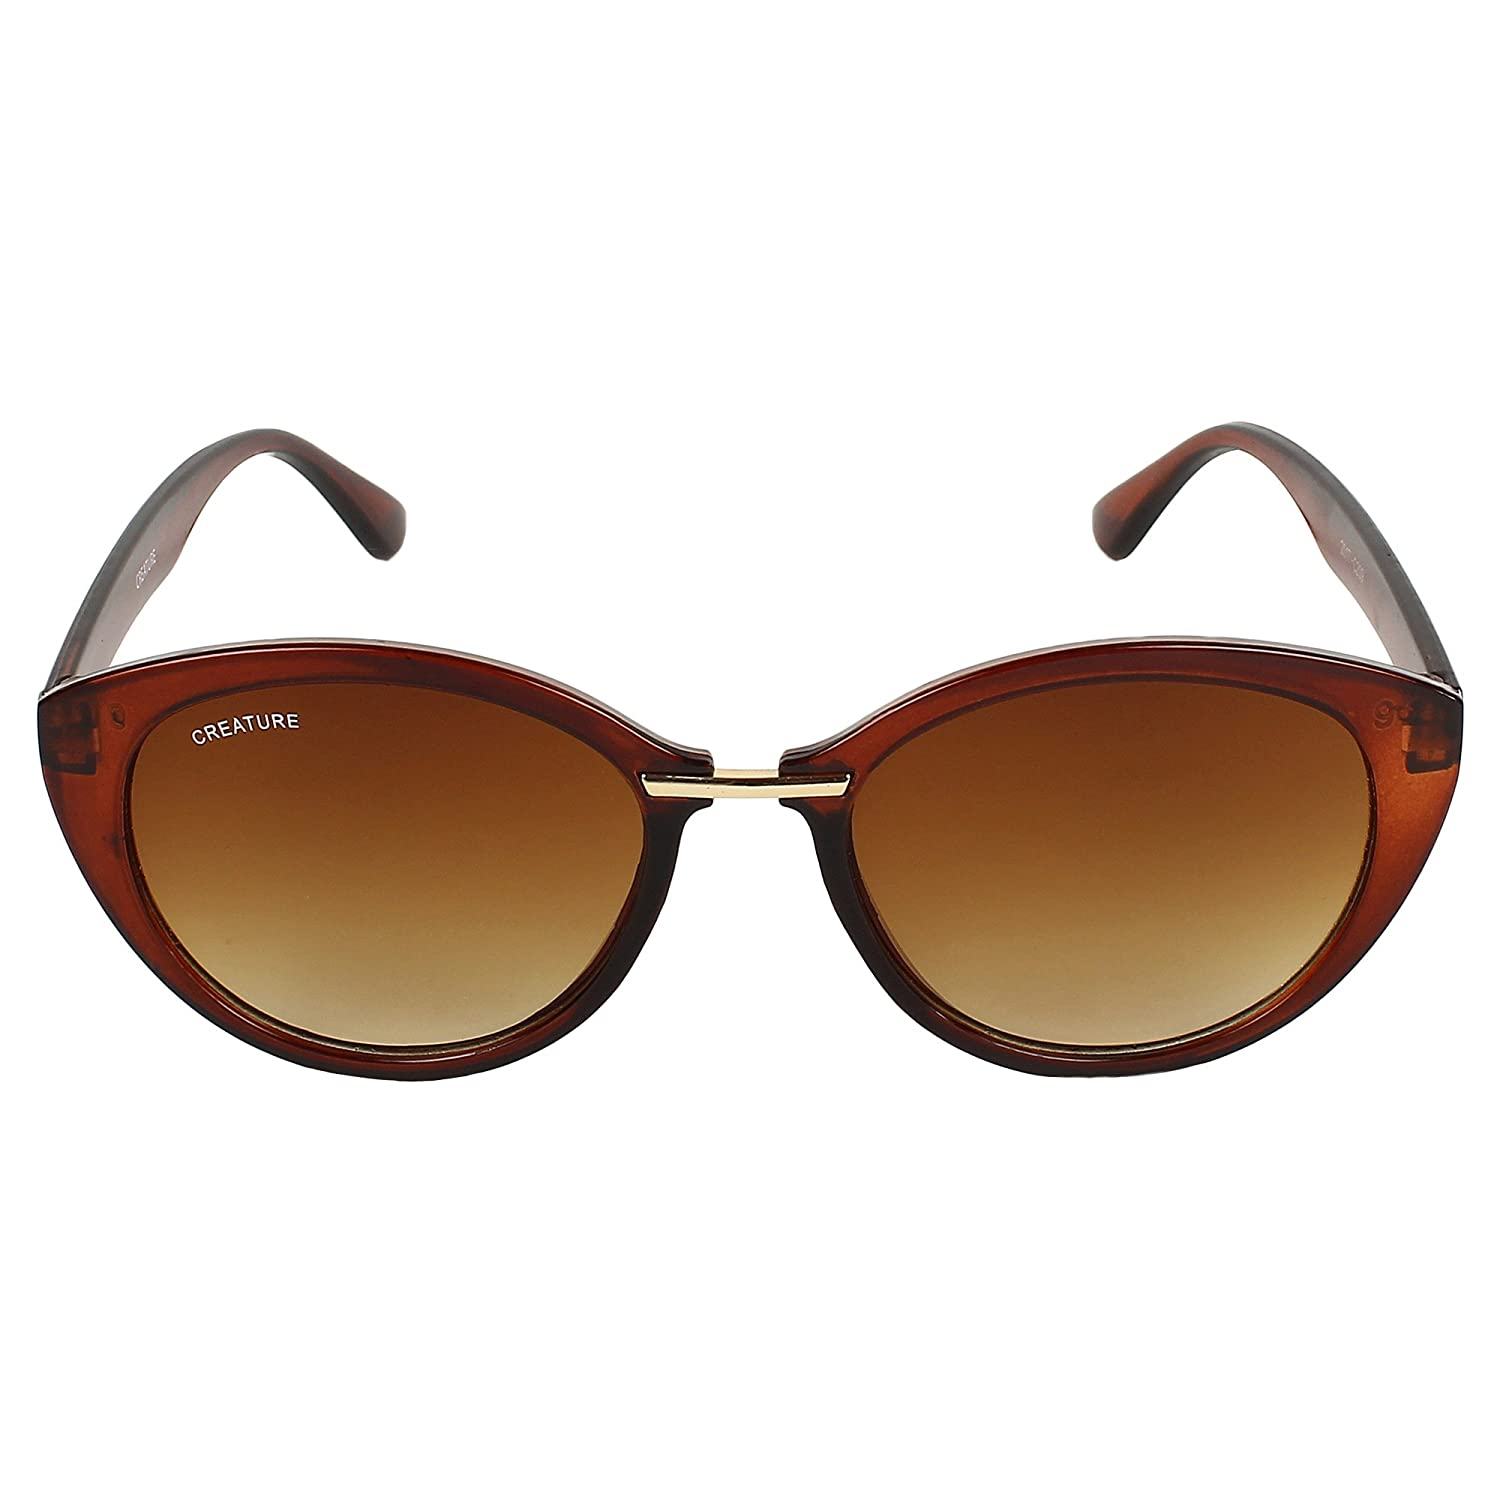 Creature Cat-Eye Sunglasses For Women